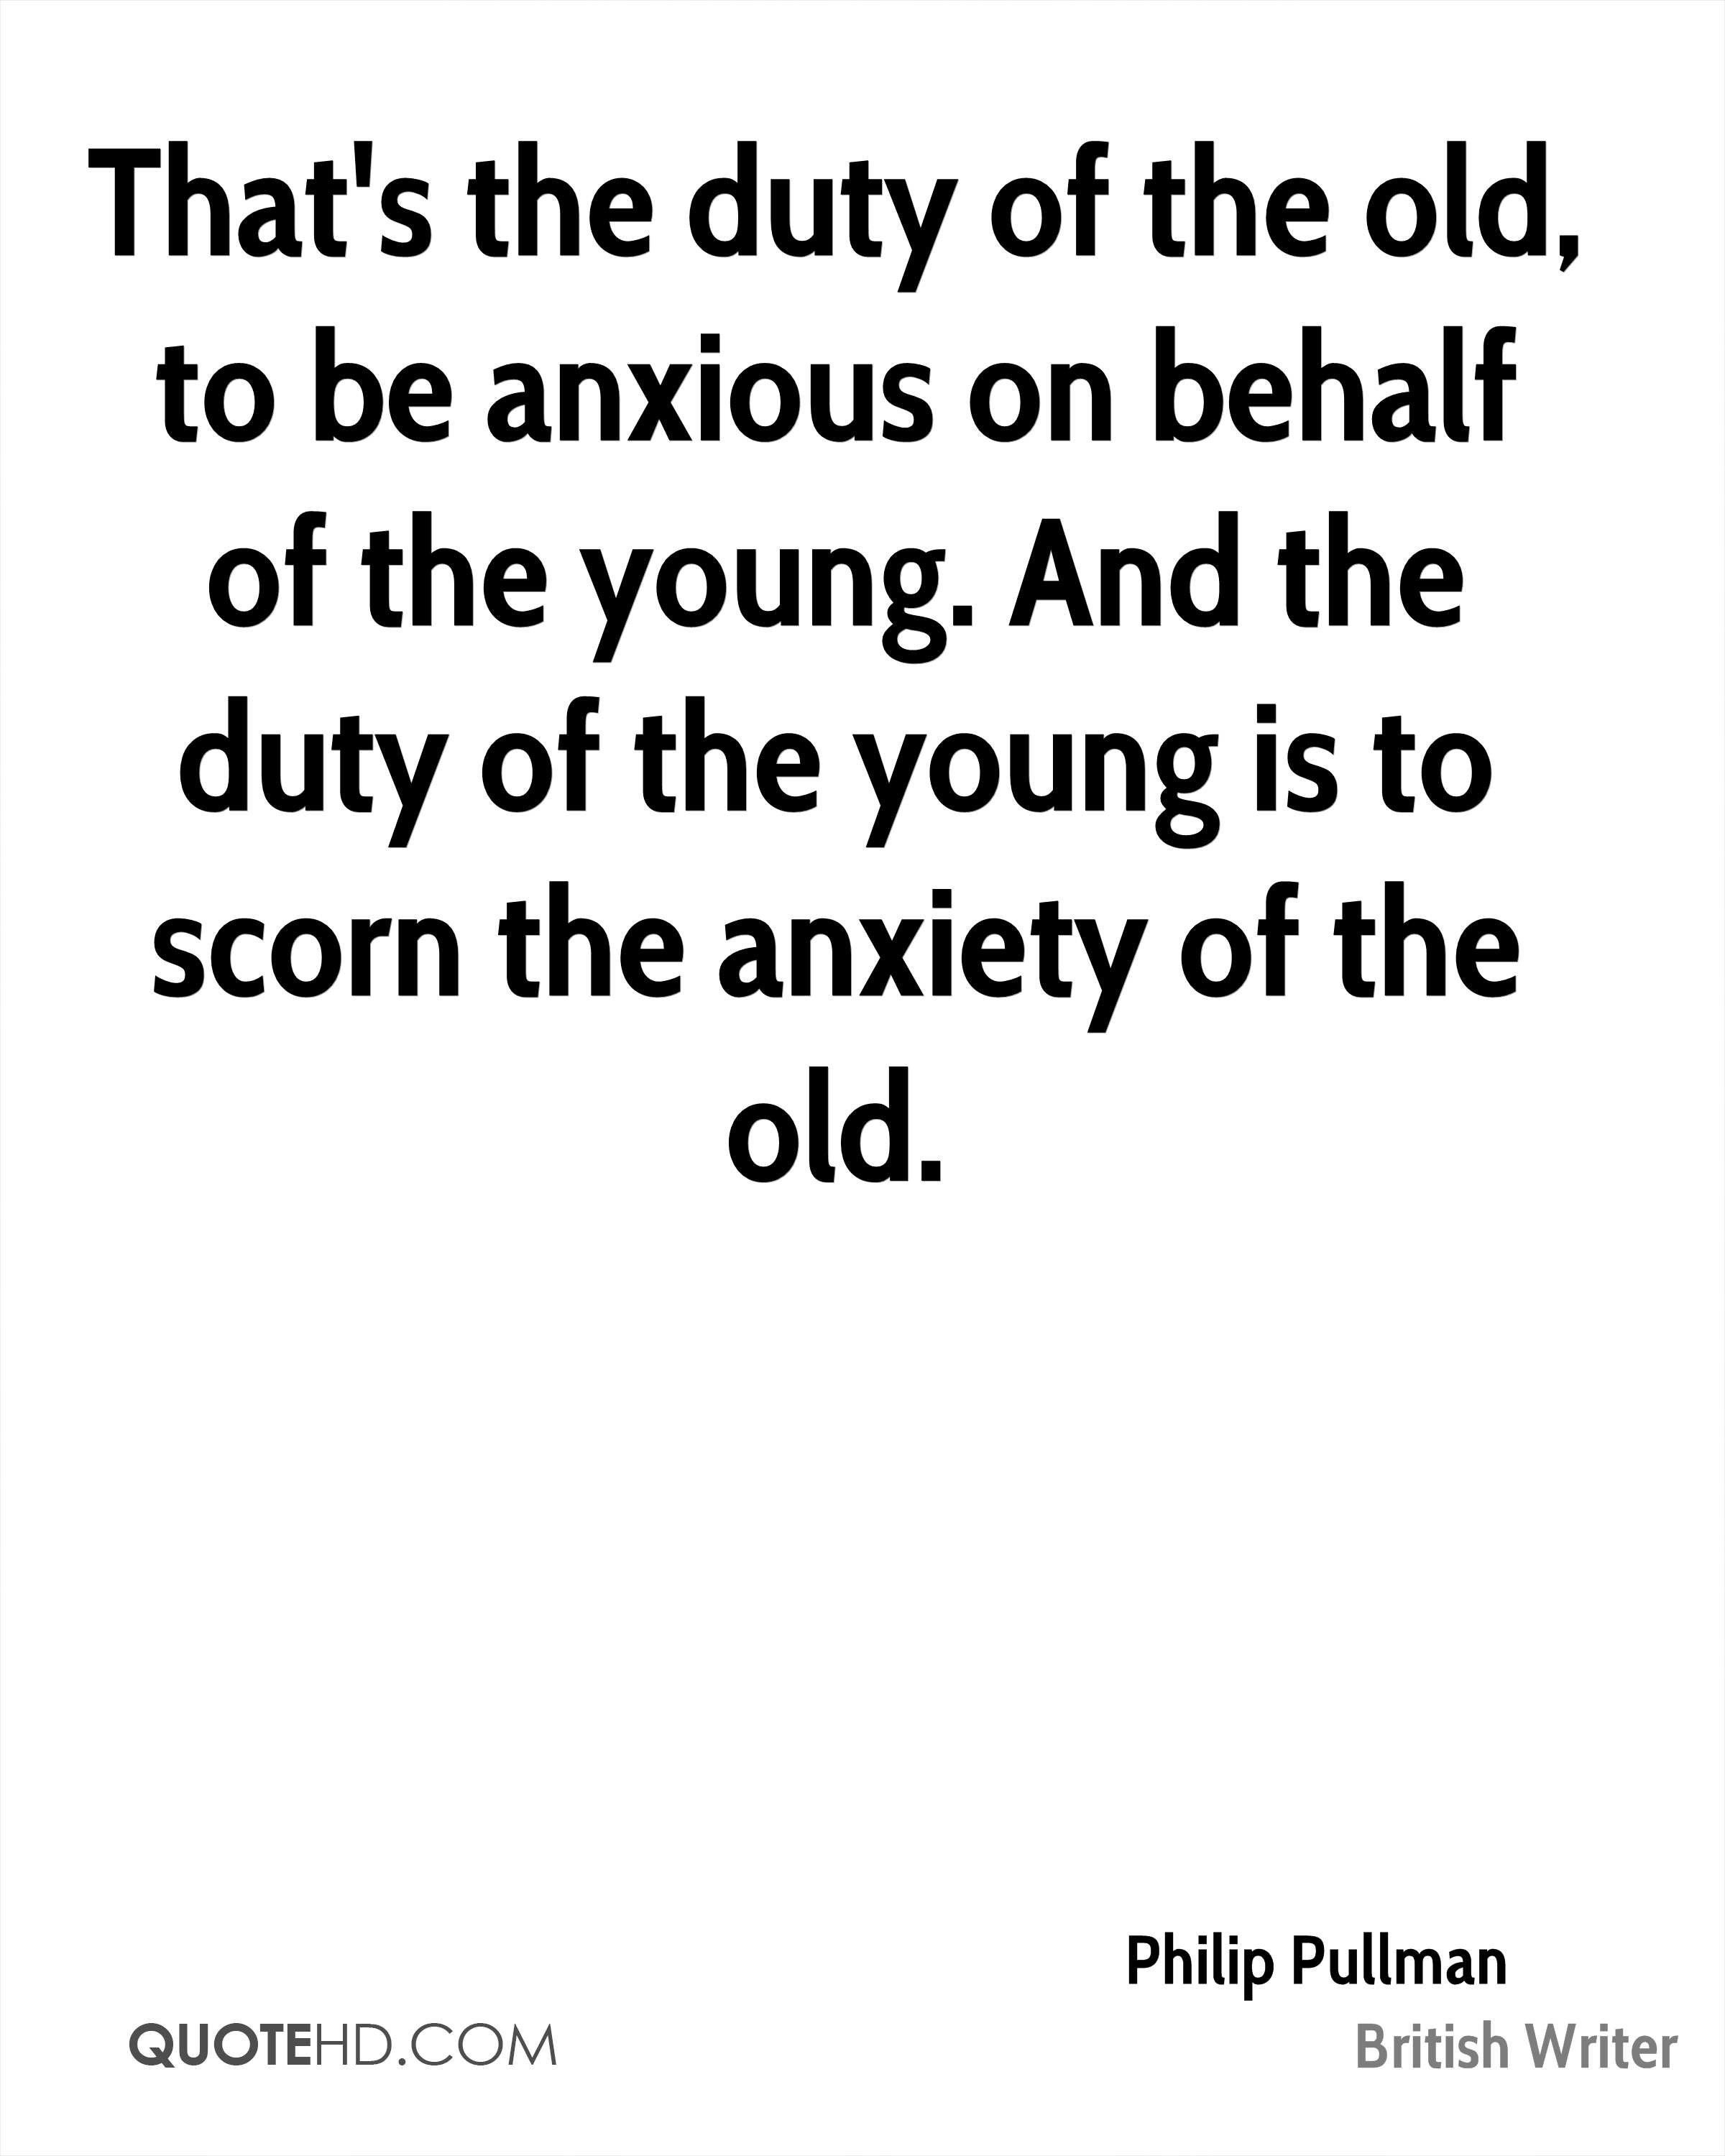 That's the duty of the old, to be anxious on behalf of the young. And the duty of the young is to scorn the anxiety of the old.